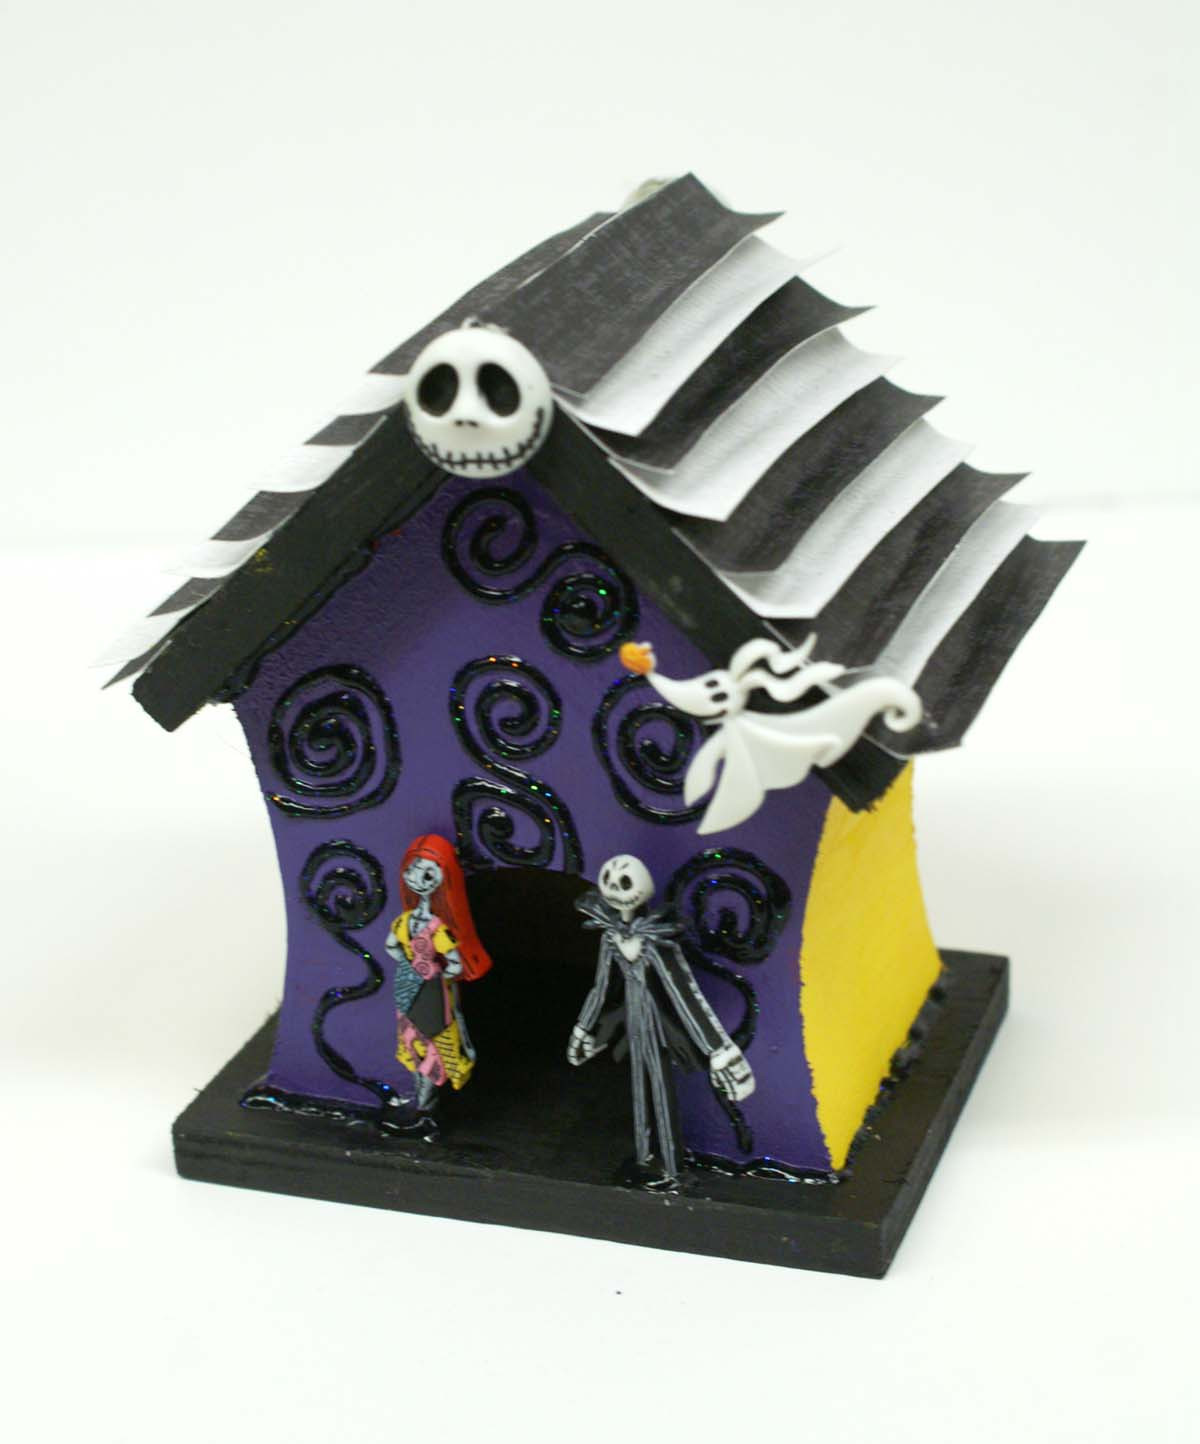 Nightmare Before Christmas Decorations DIY  Ben Franklin Crafts and Frame Shop DIY Nightmare Before